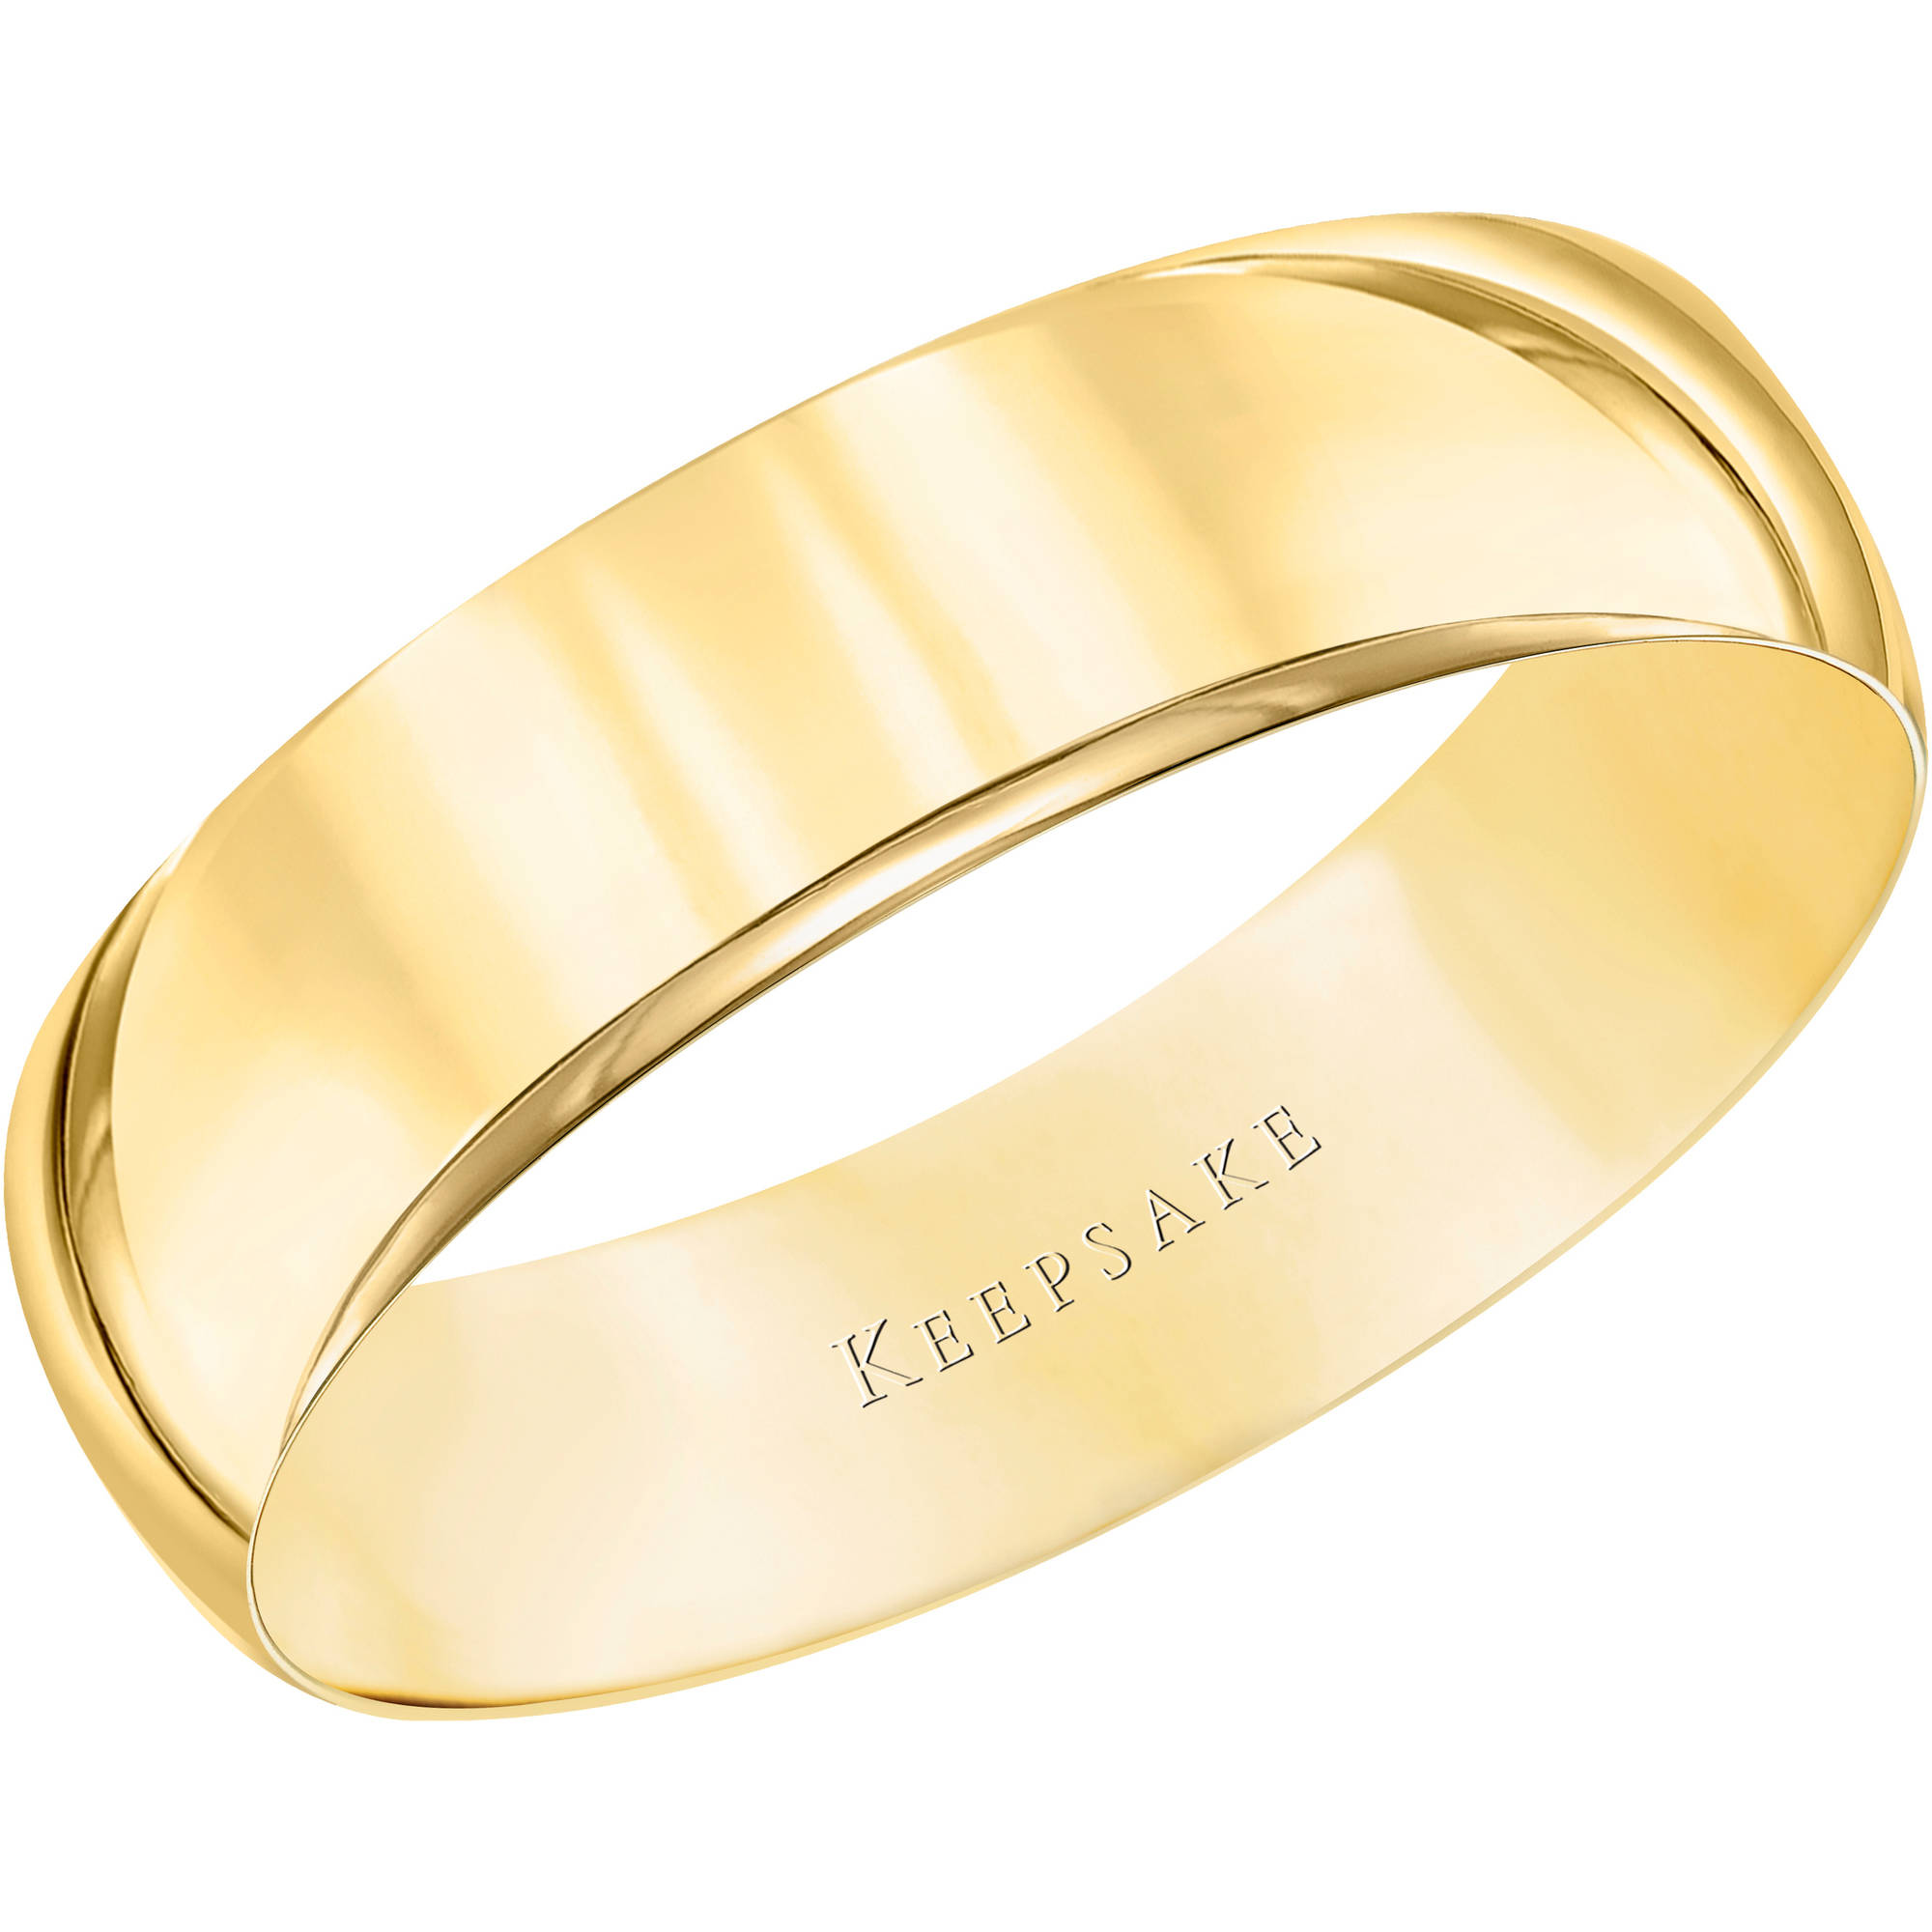 wedding bands walmartcom - Wedding Rings Walmart